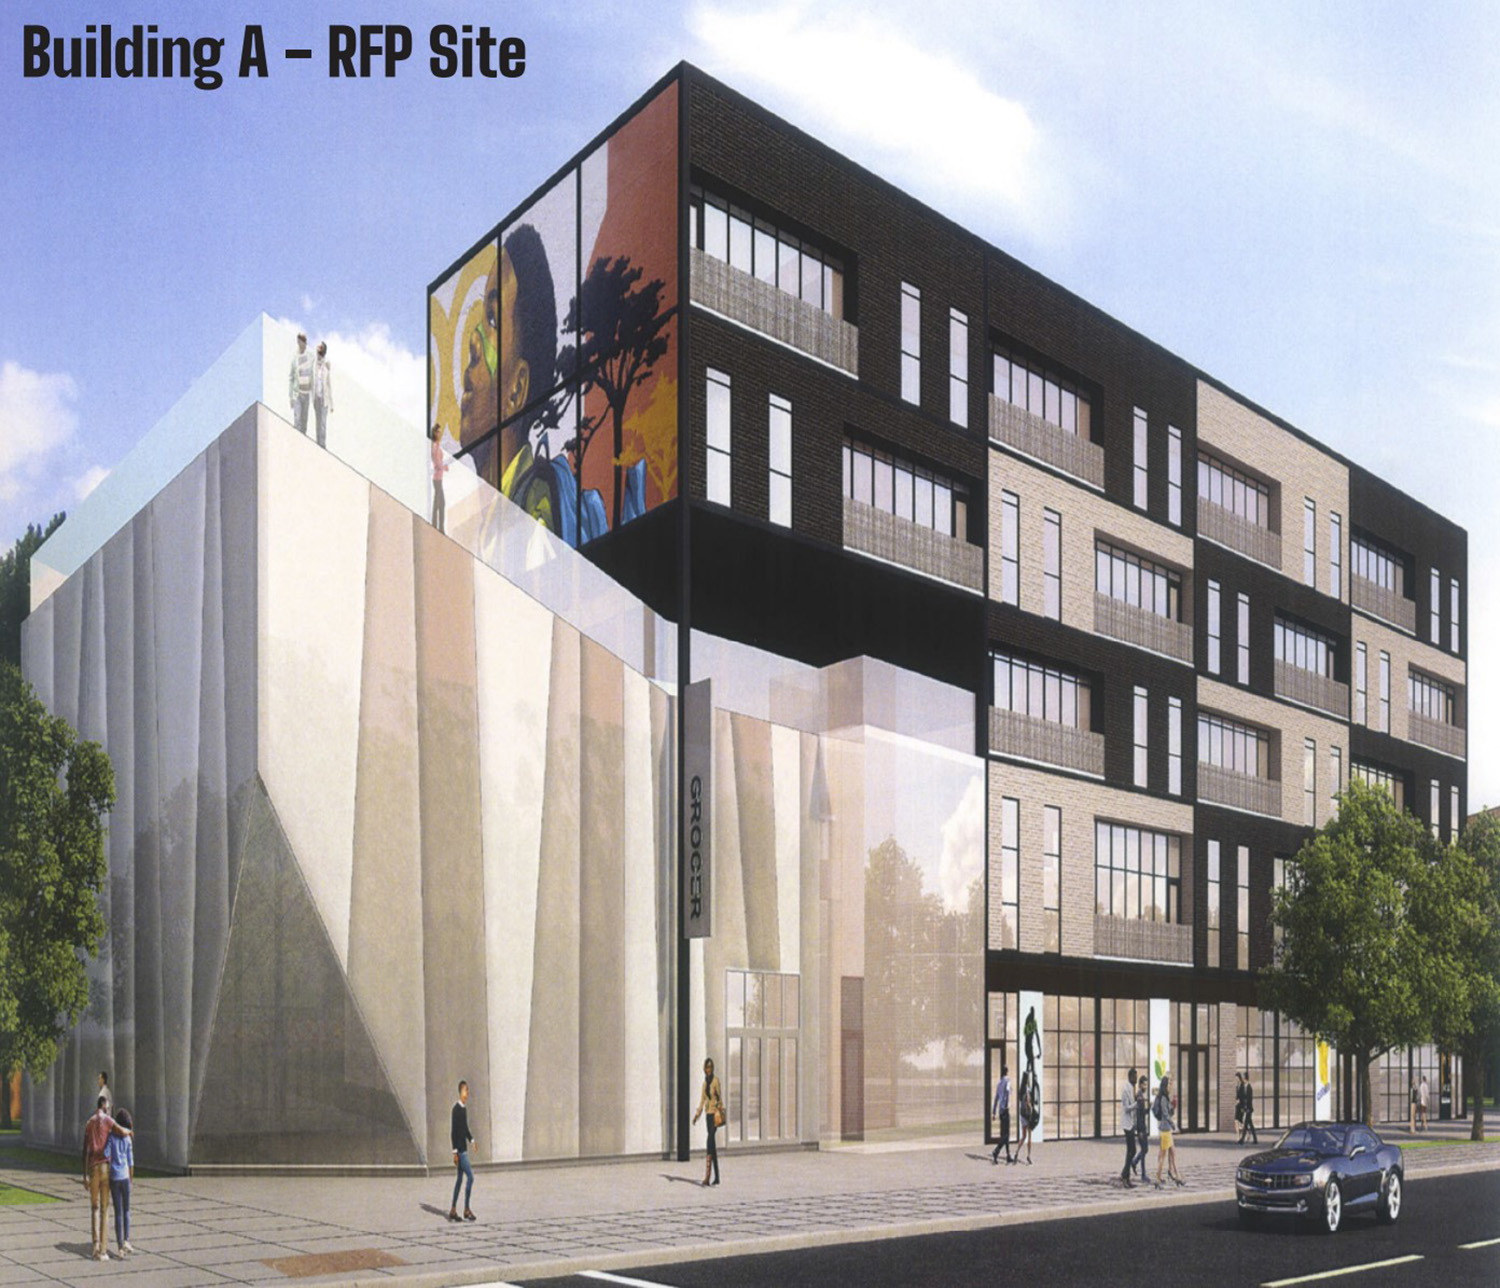 47th/Vincennes Partnership. Rendering by Brook Architecture, Revere Properties Architects, and Site Design Group